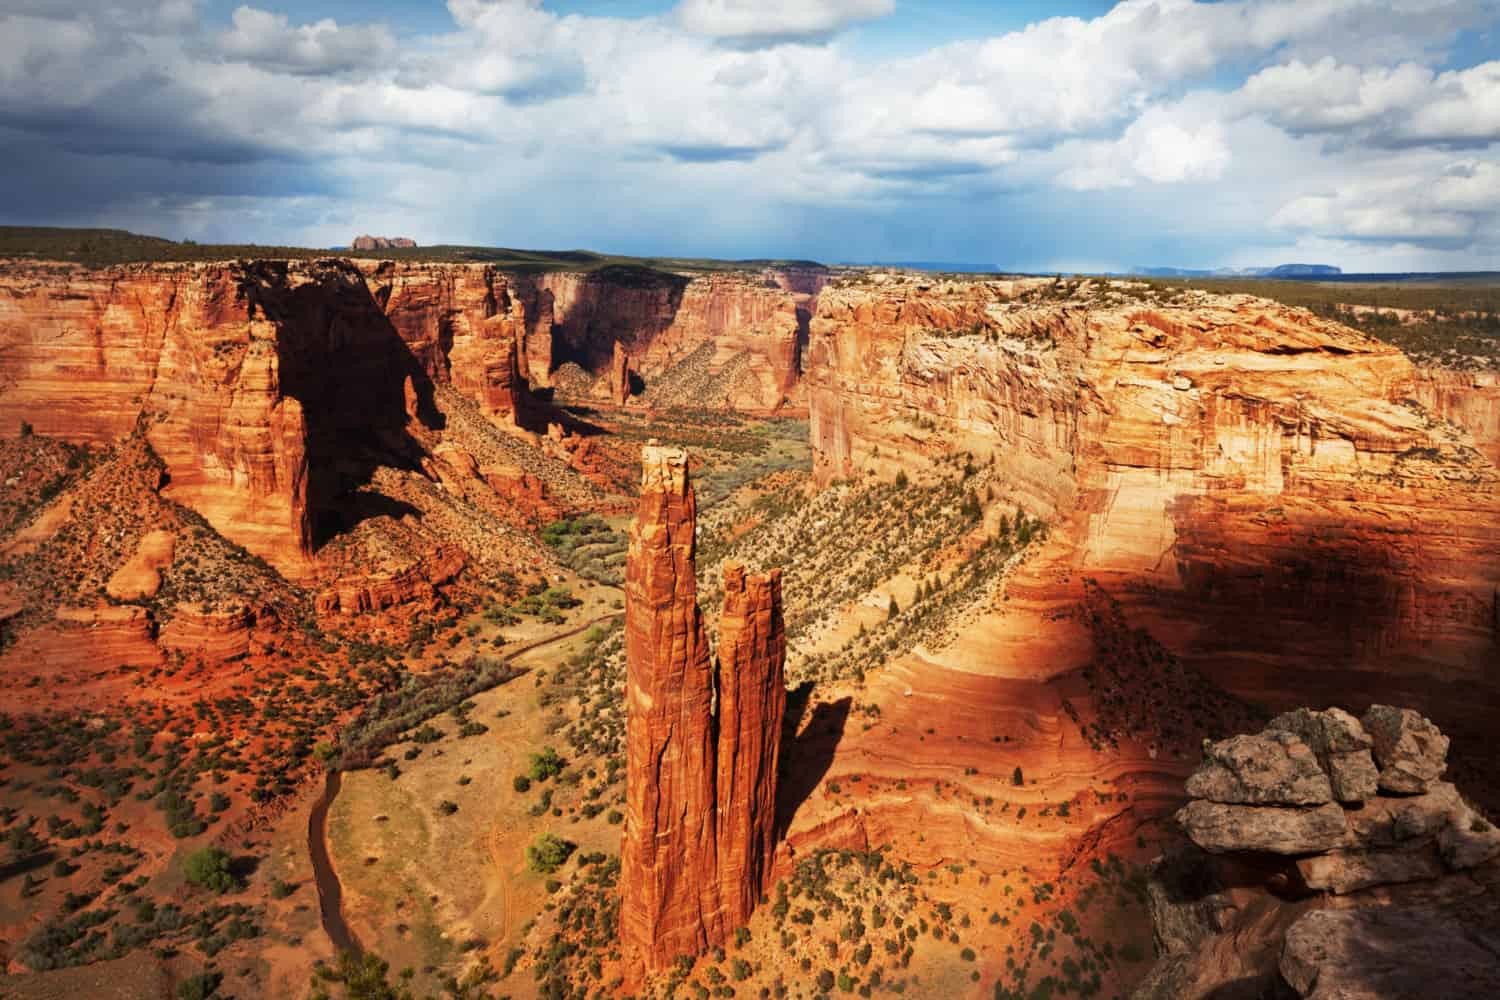 Spider Rock in Canyon De Chelly National Monument in Arizona